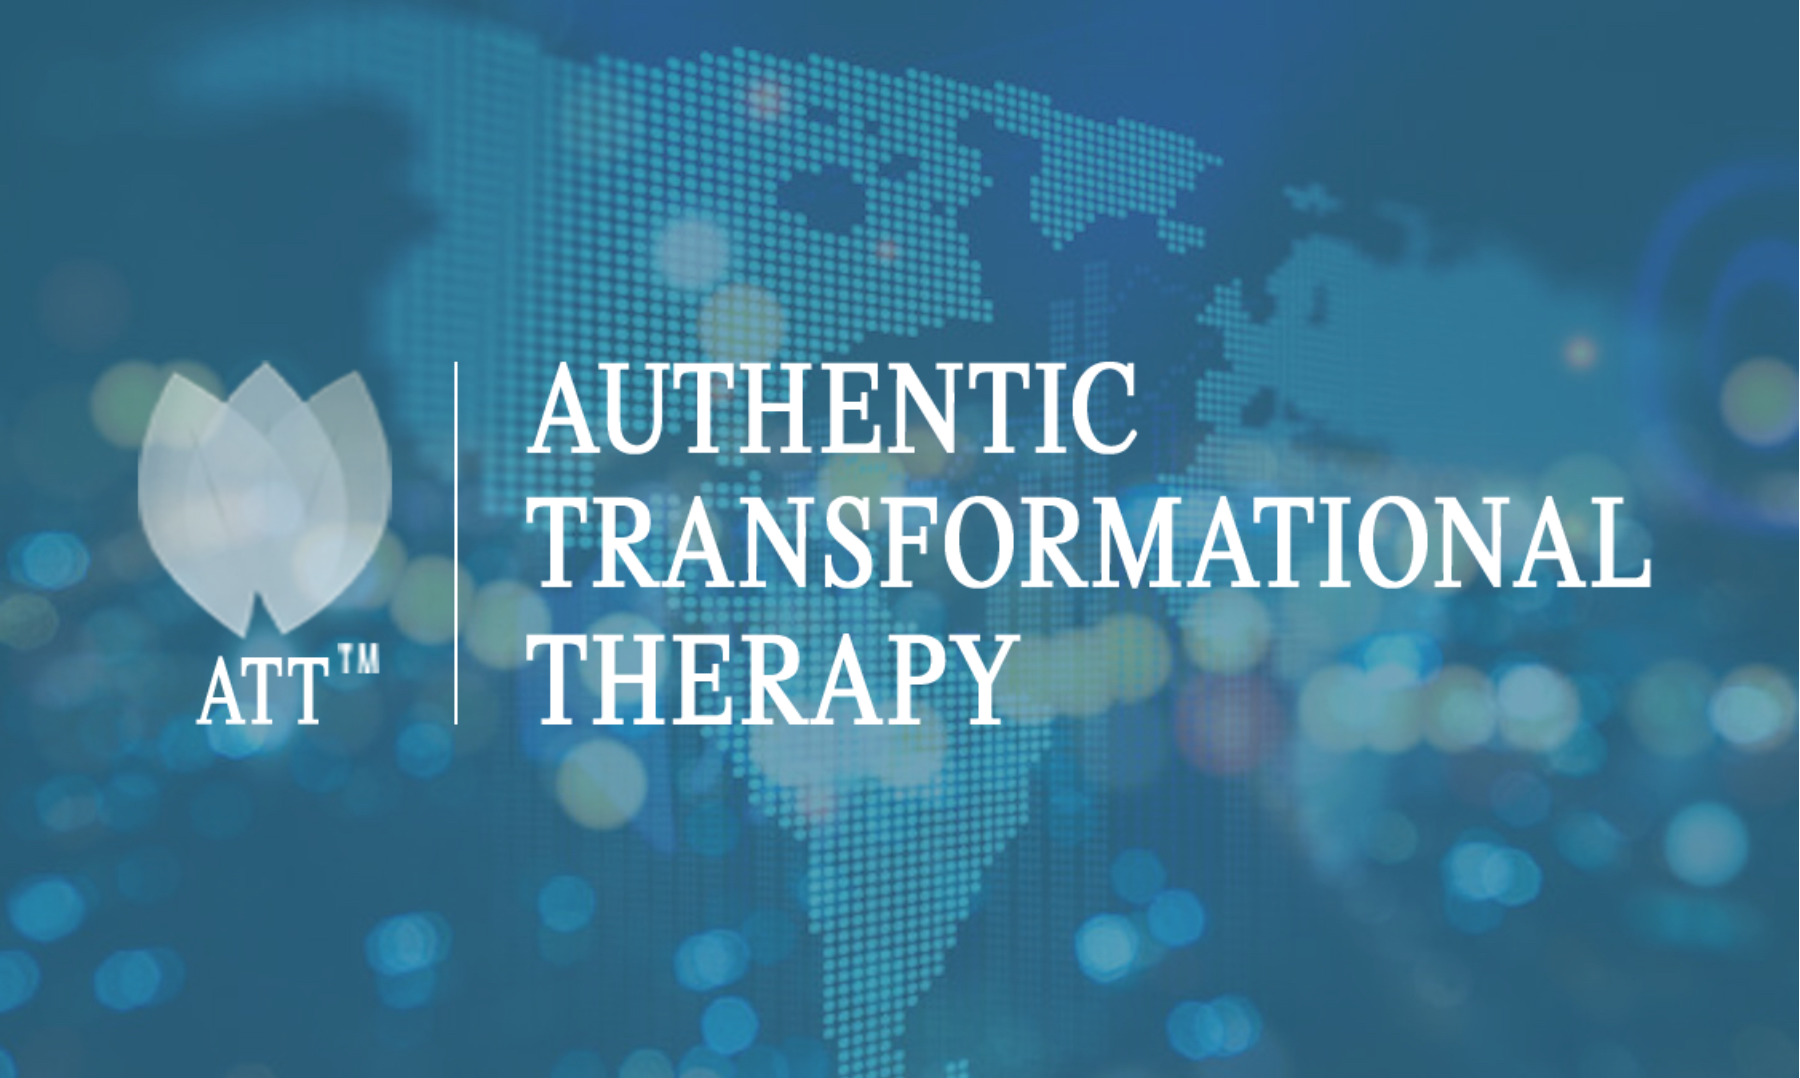 authentic transformational therapy bg